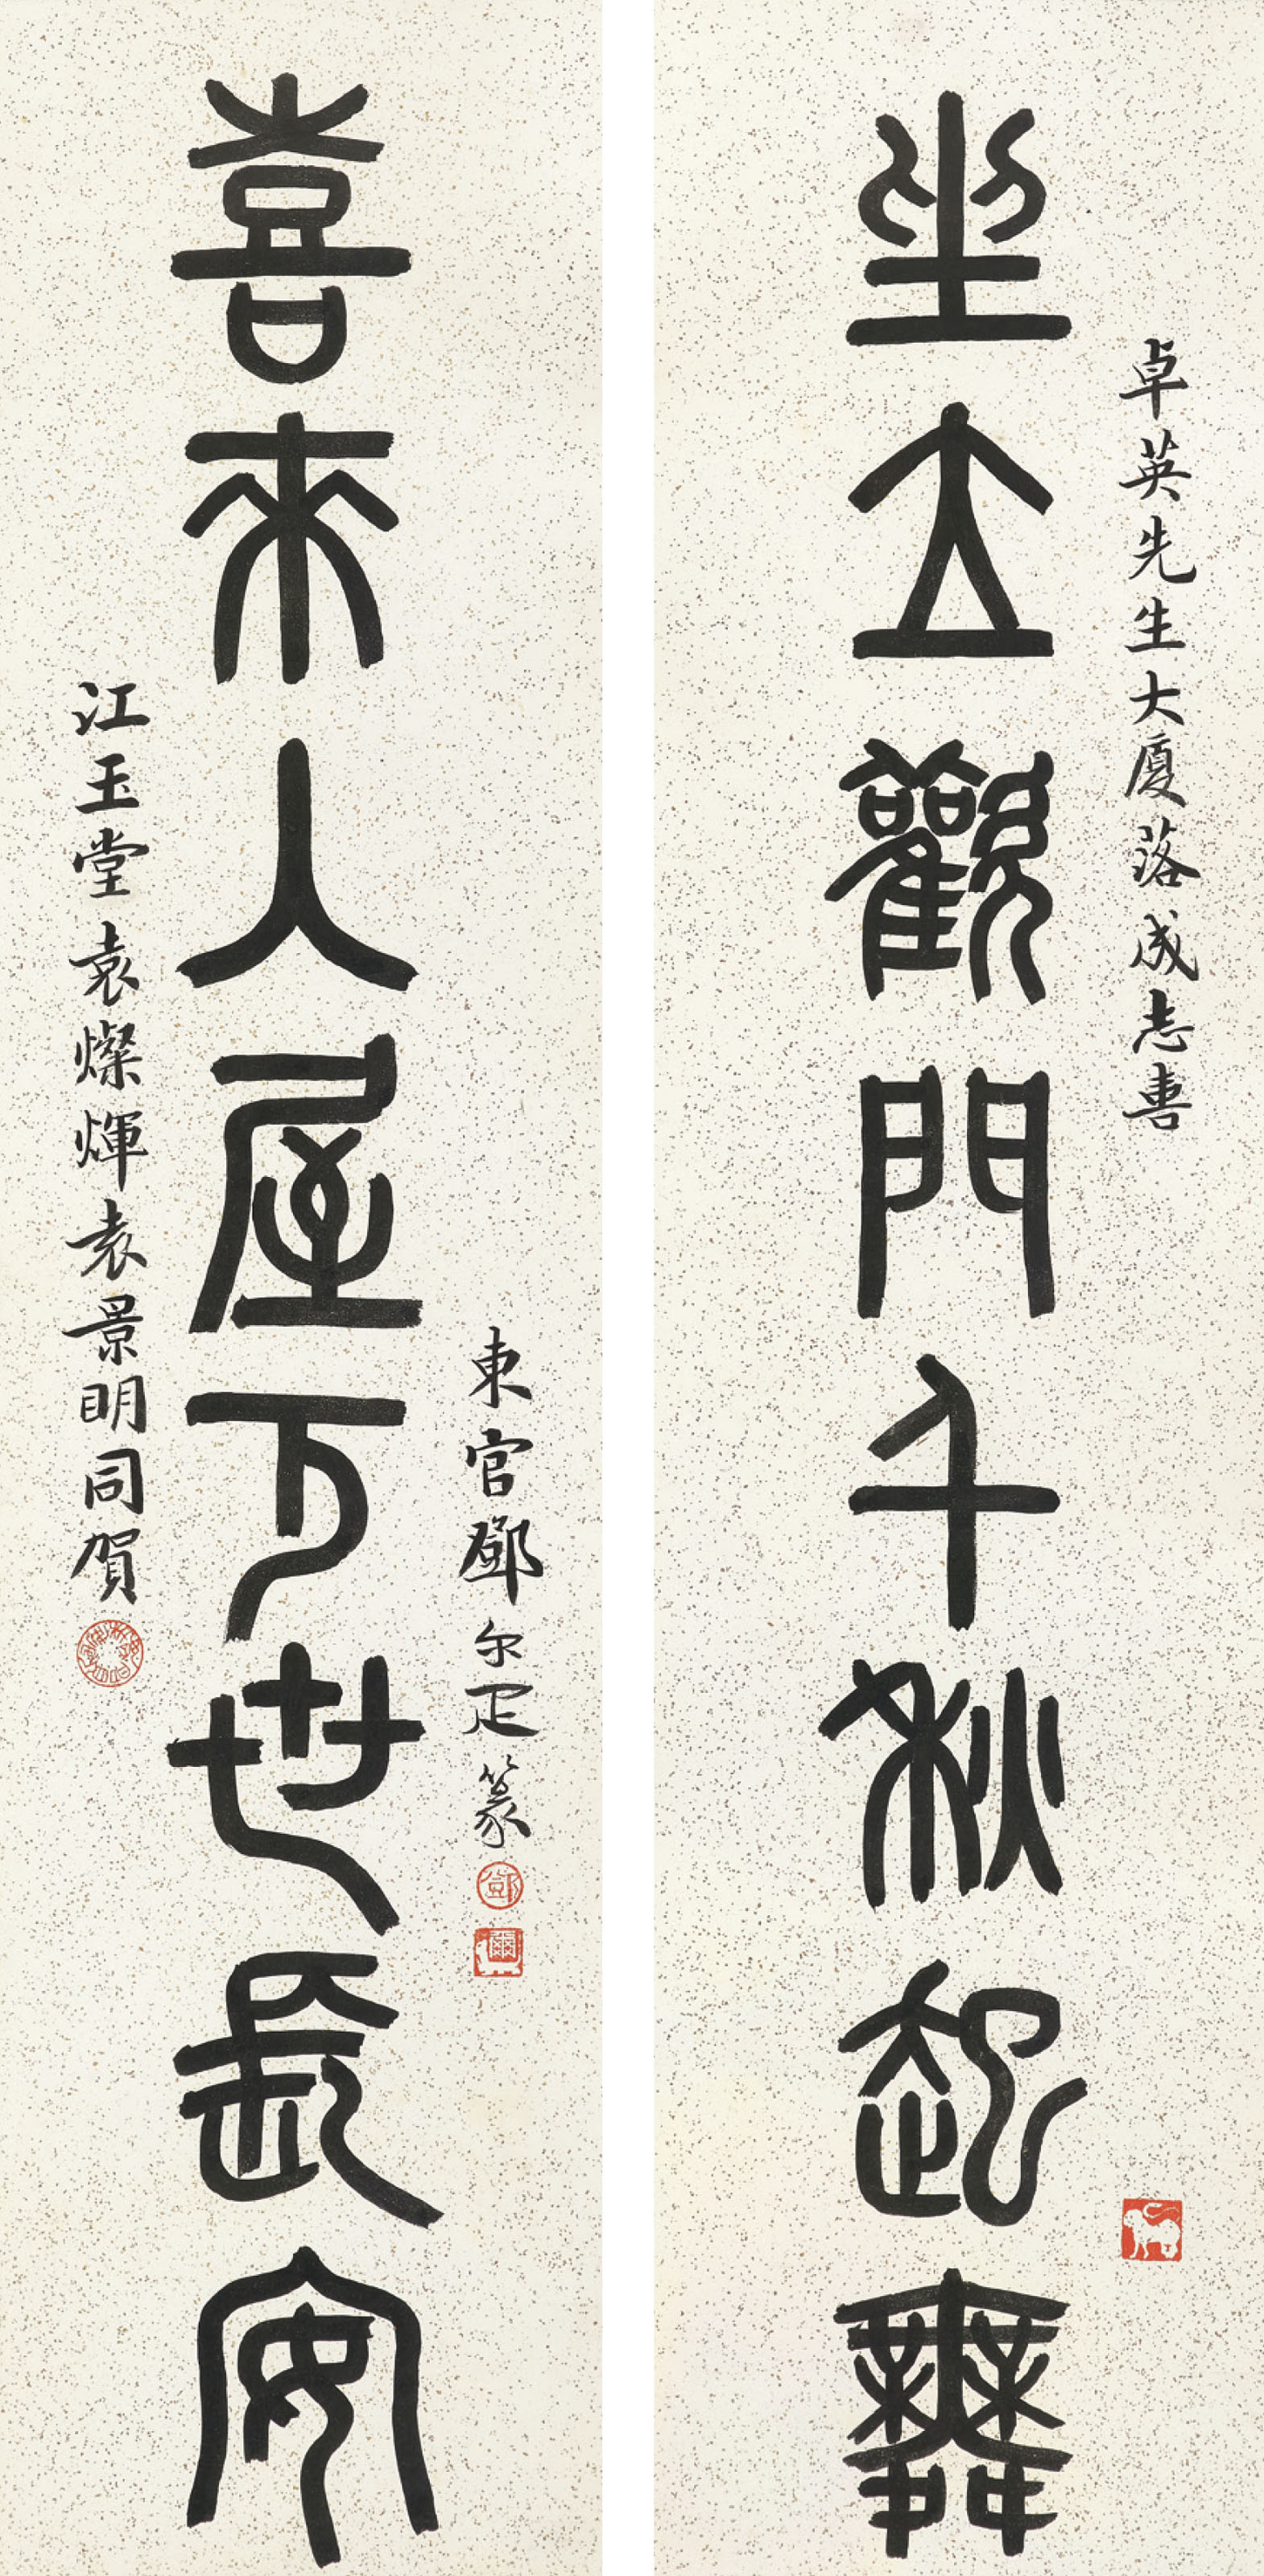 Eight-character Calligraphic Couplet in Seal Script